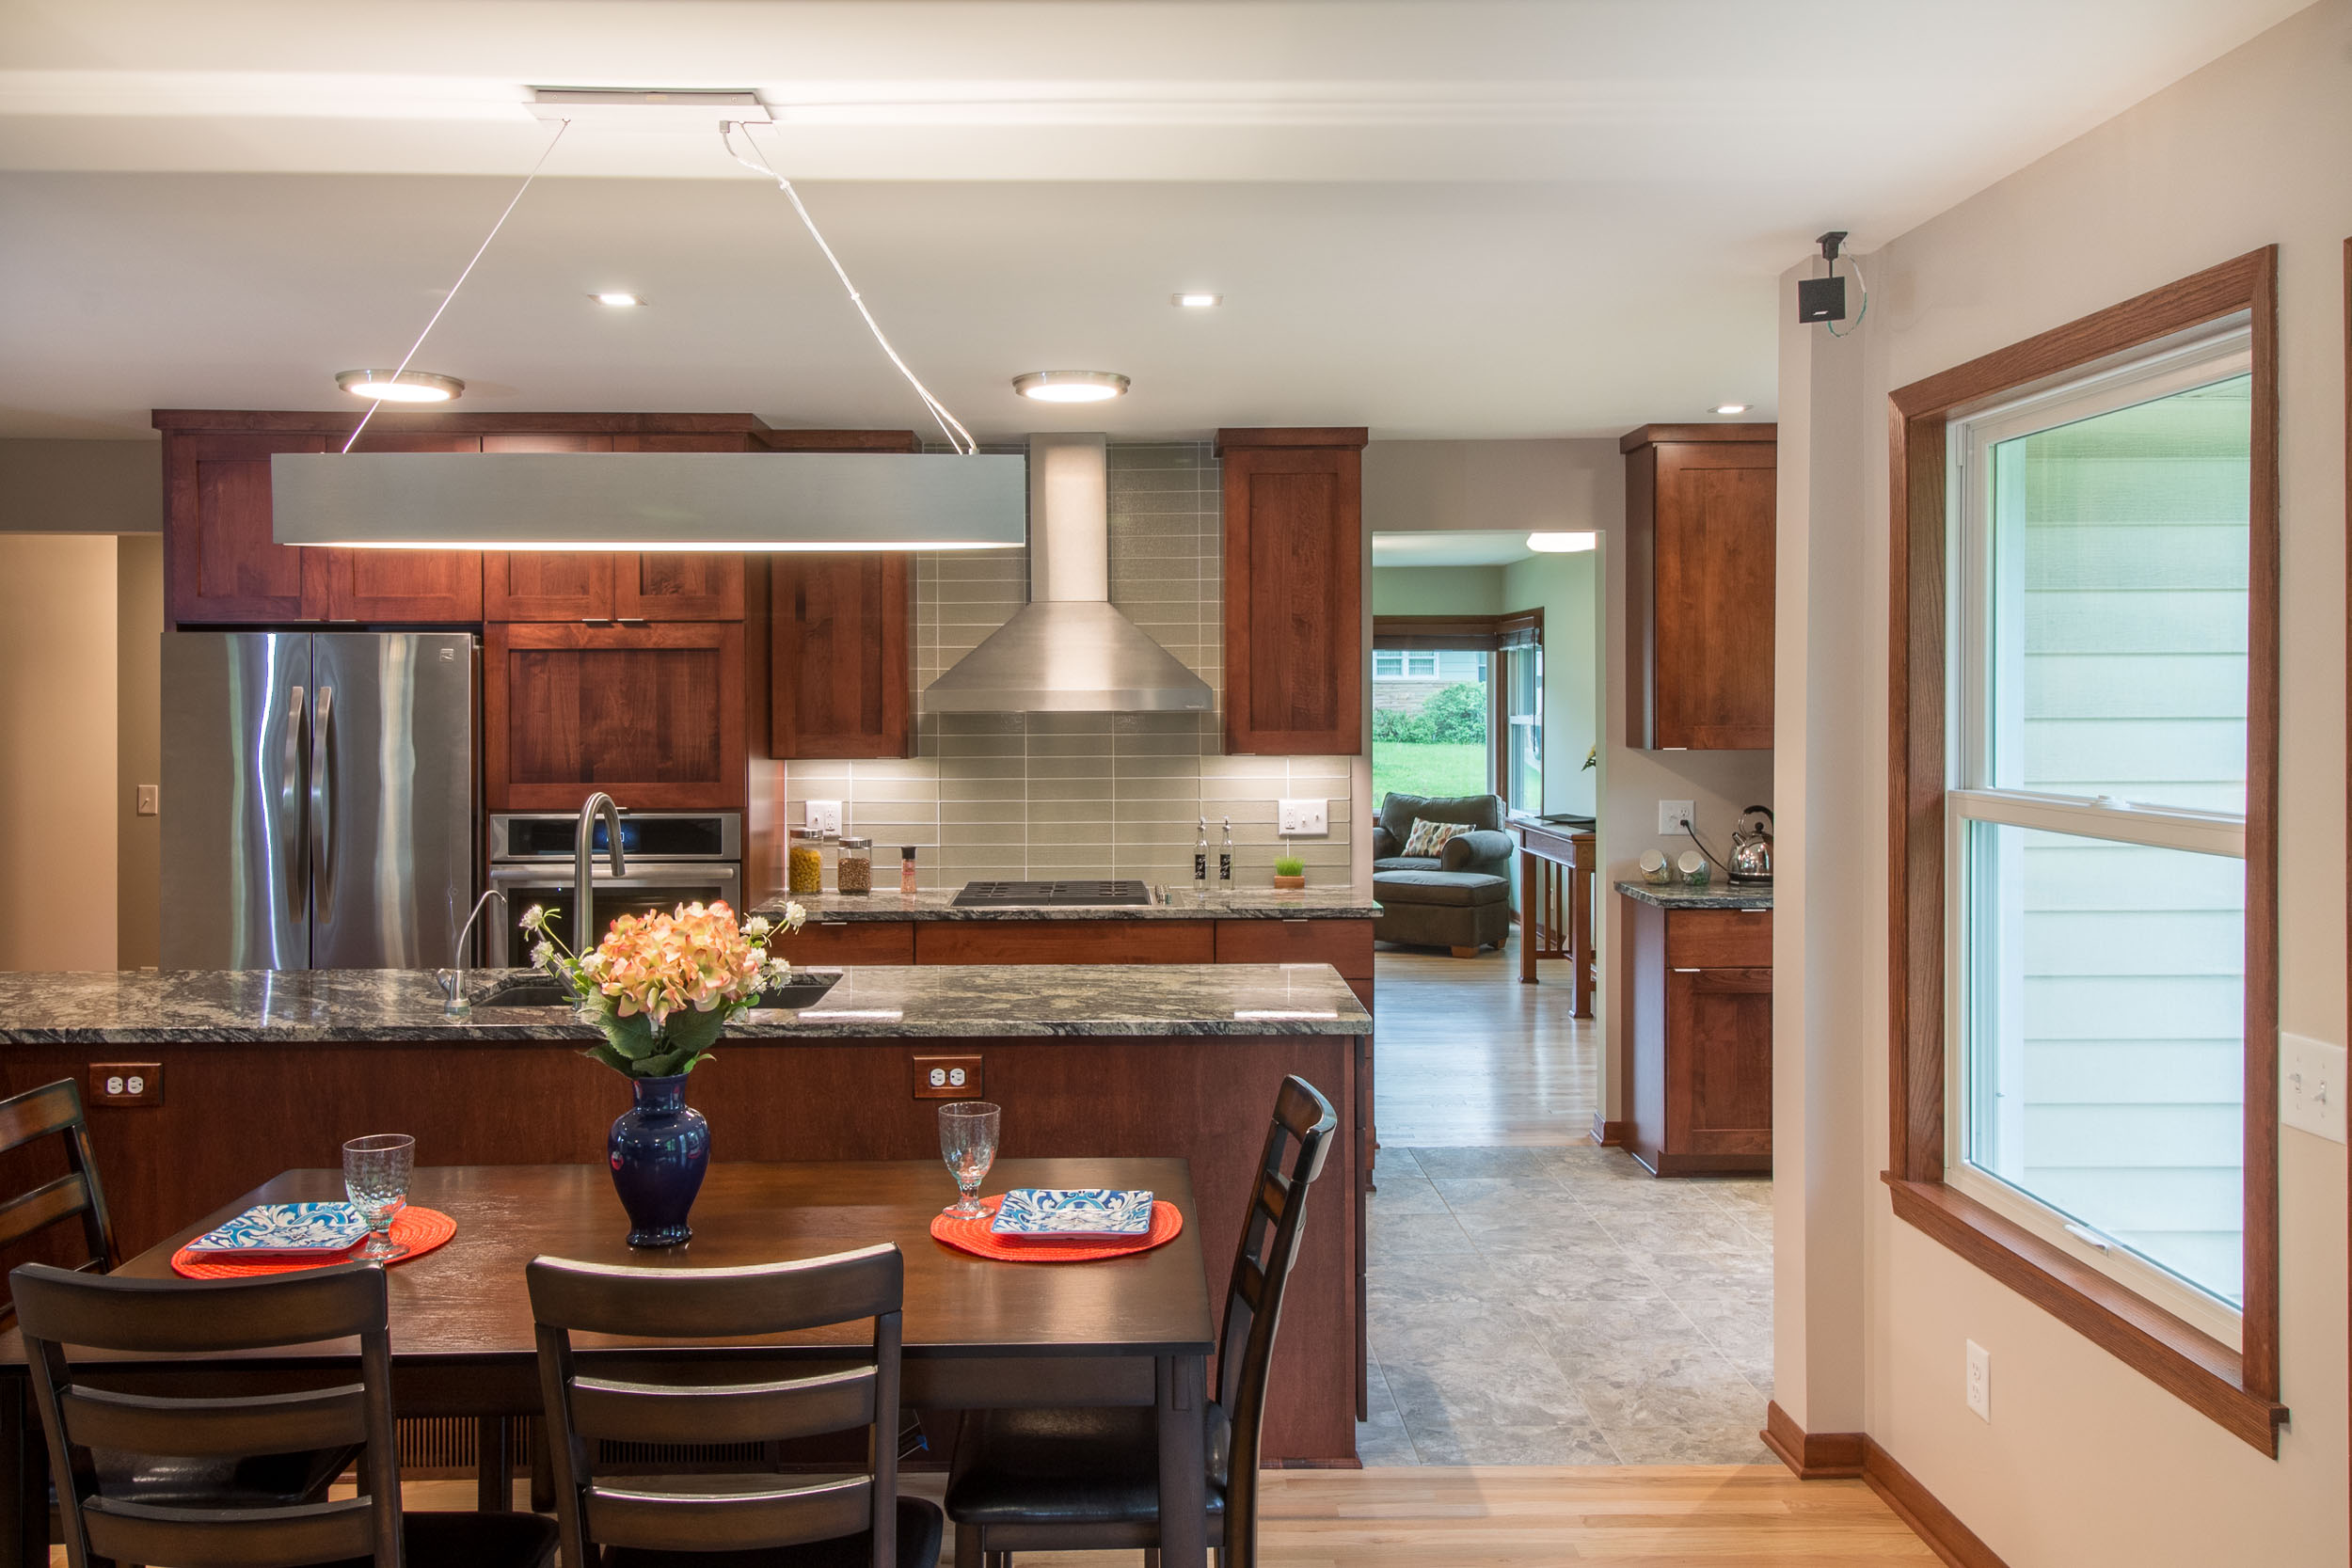 1950's Ranch Home Remodel